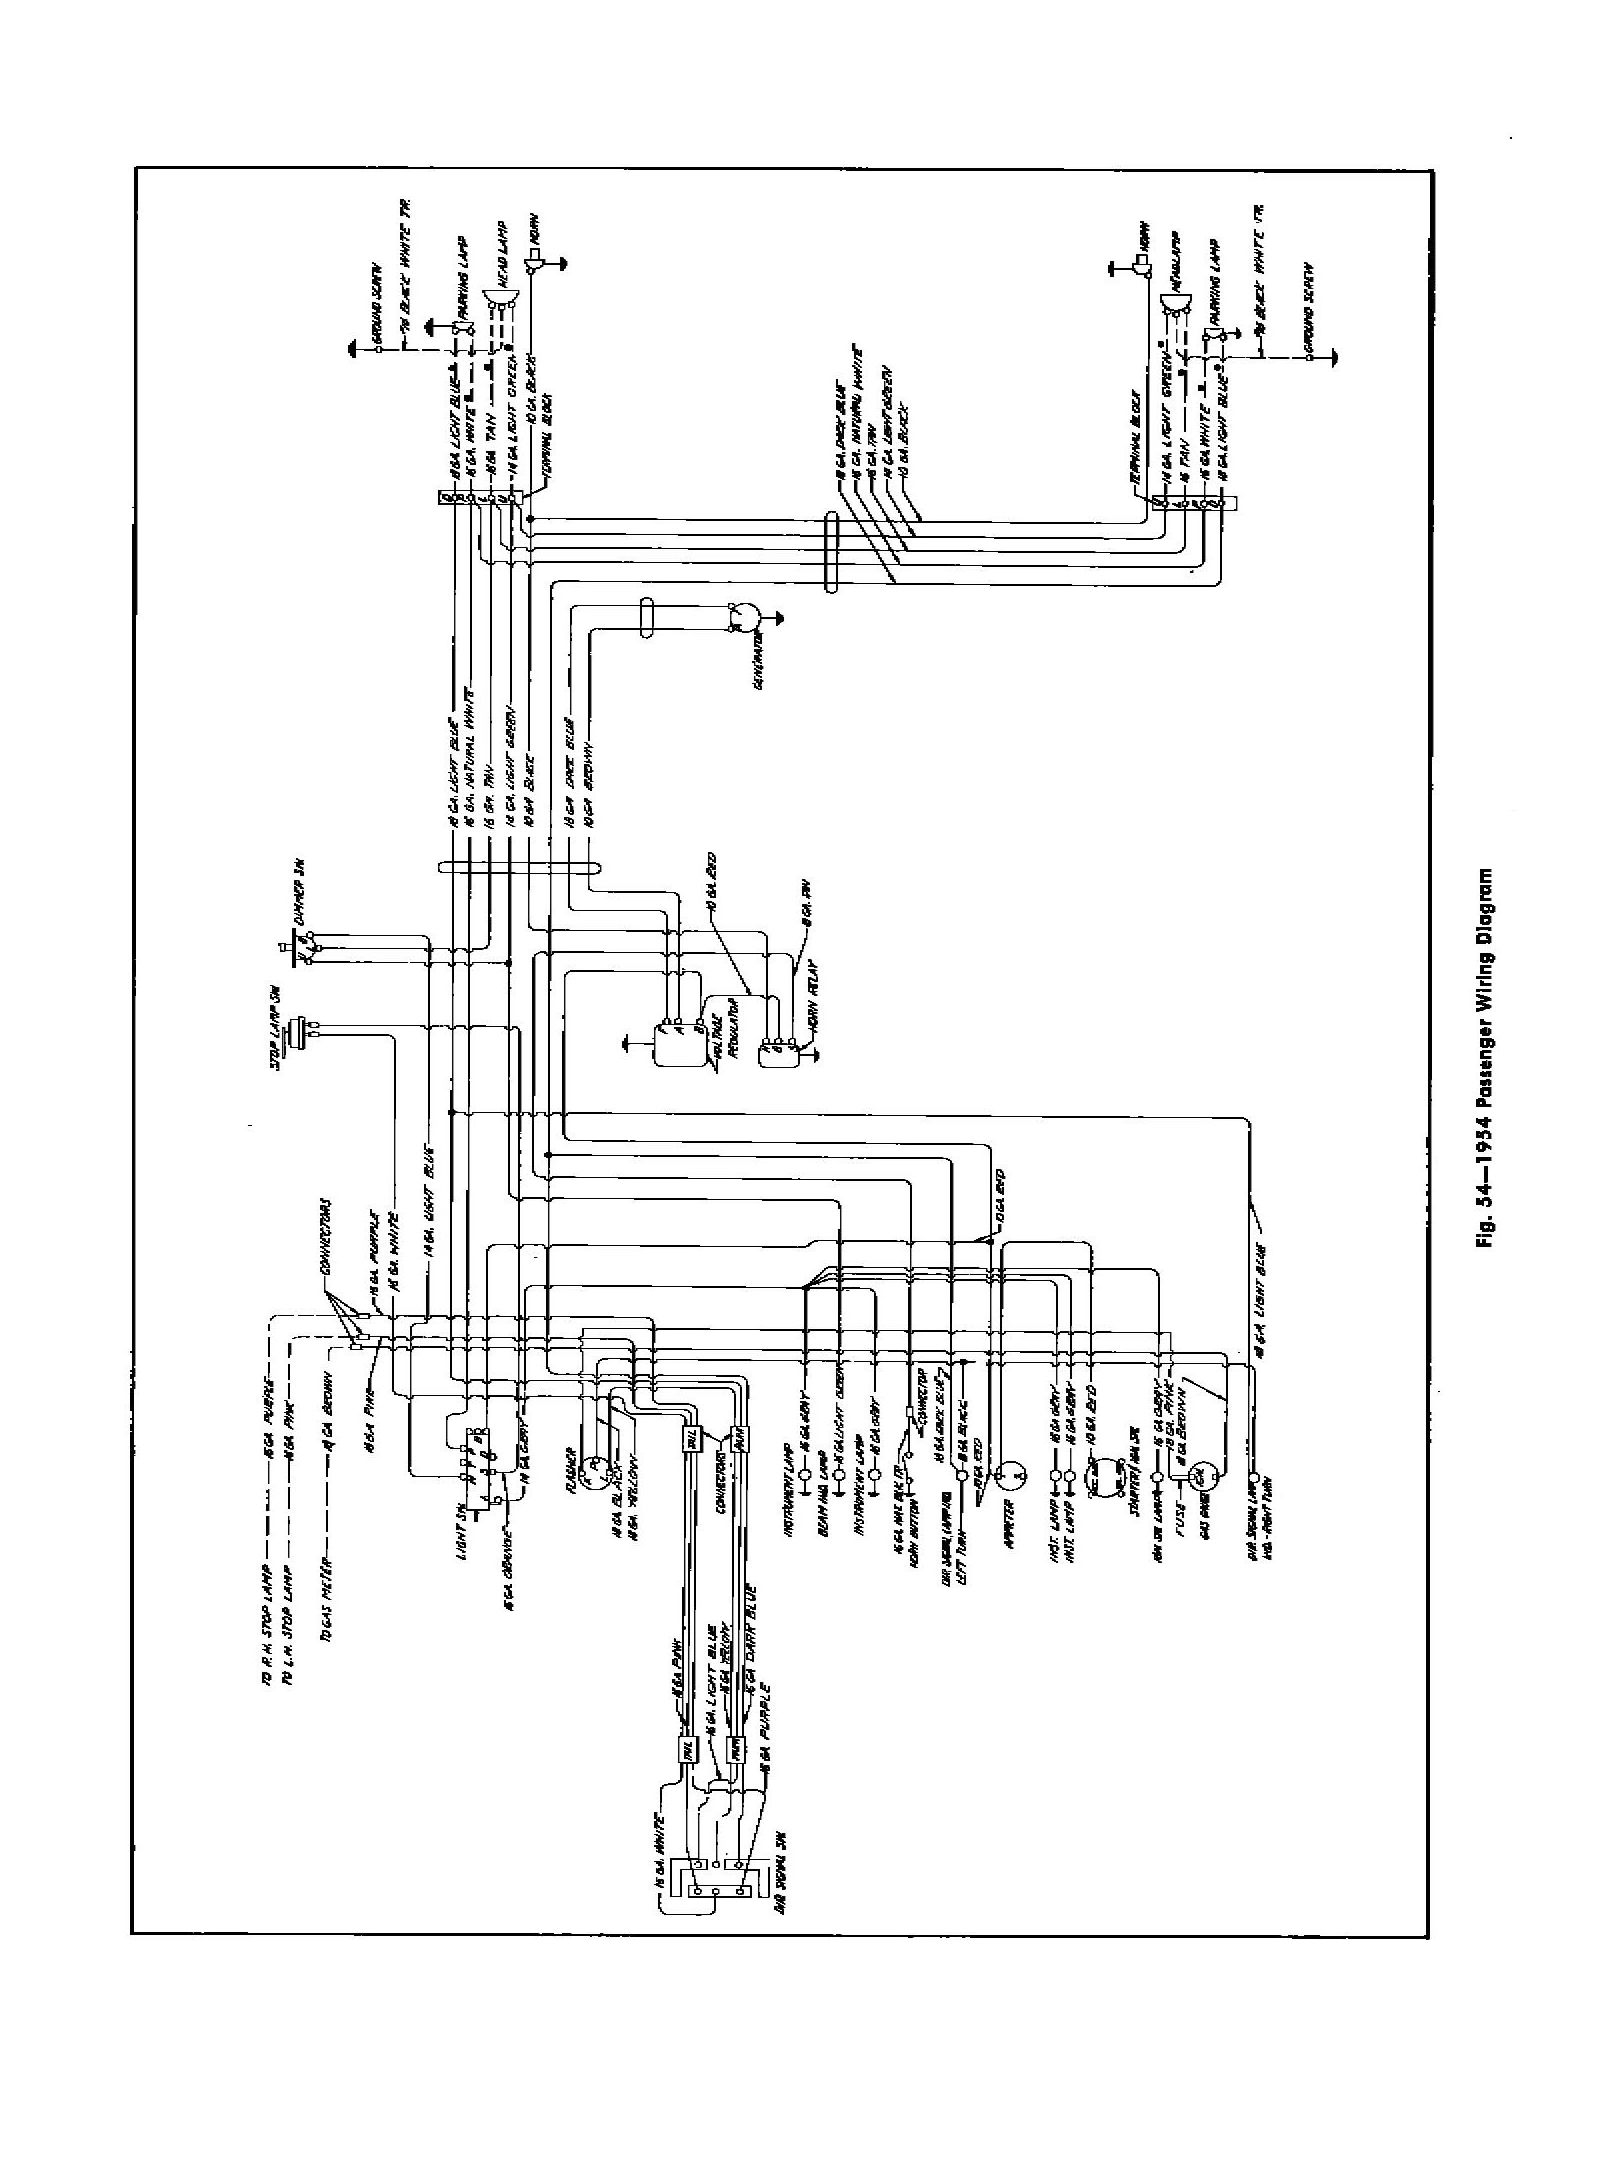 54 Chevy Truck Wiring Diagram Electrical Diagrams Schematics Ford Fuse